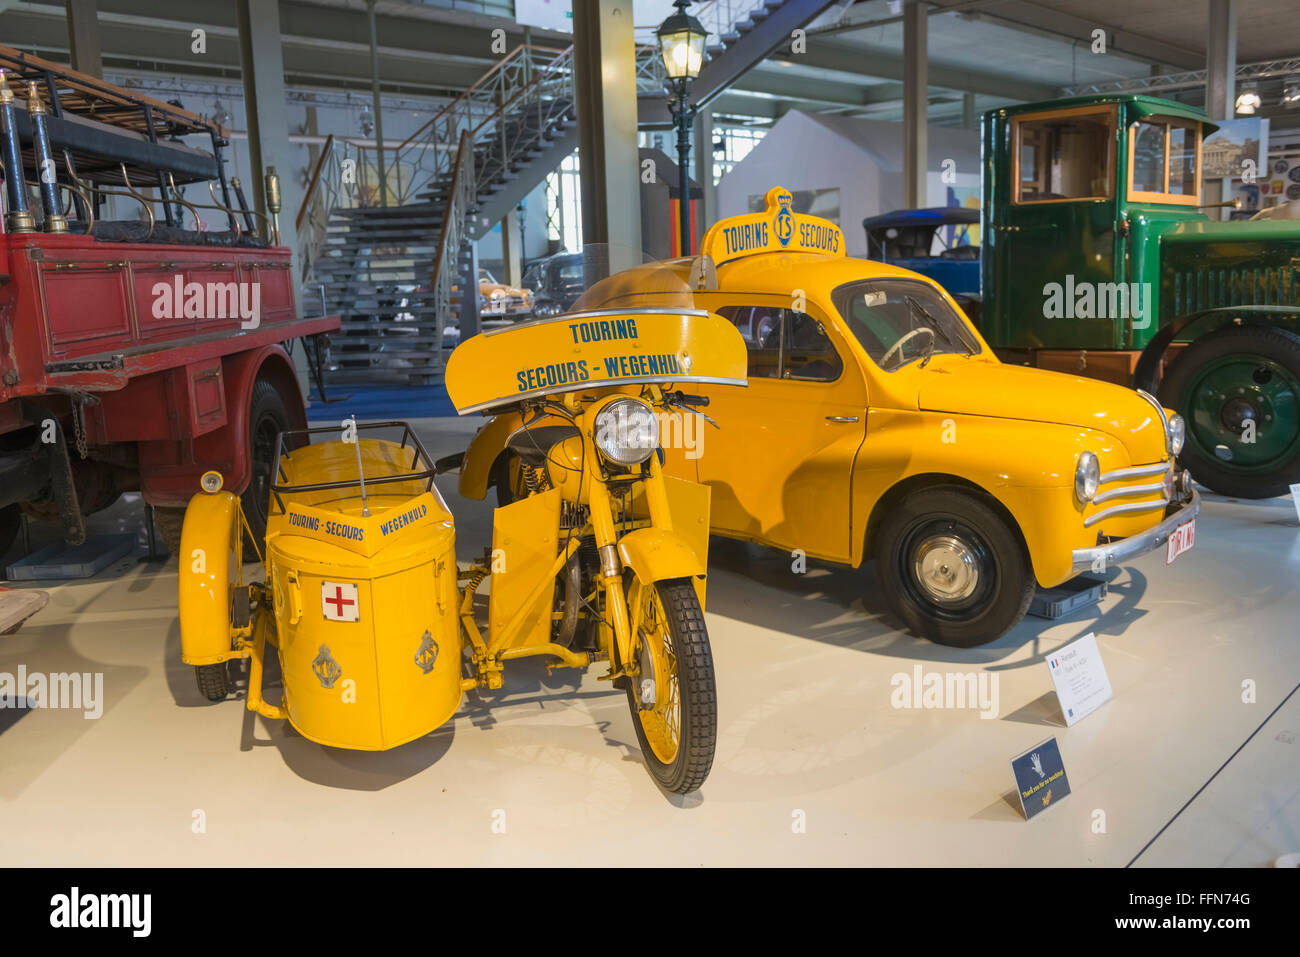 Old historic vehicles on display in Autoworld museum, Brussels, Belgium, Europe - Stock Image